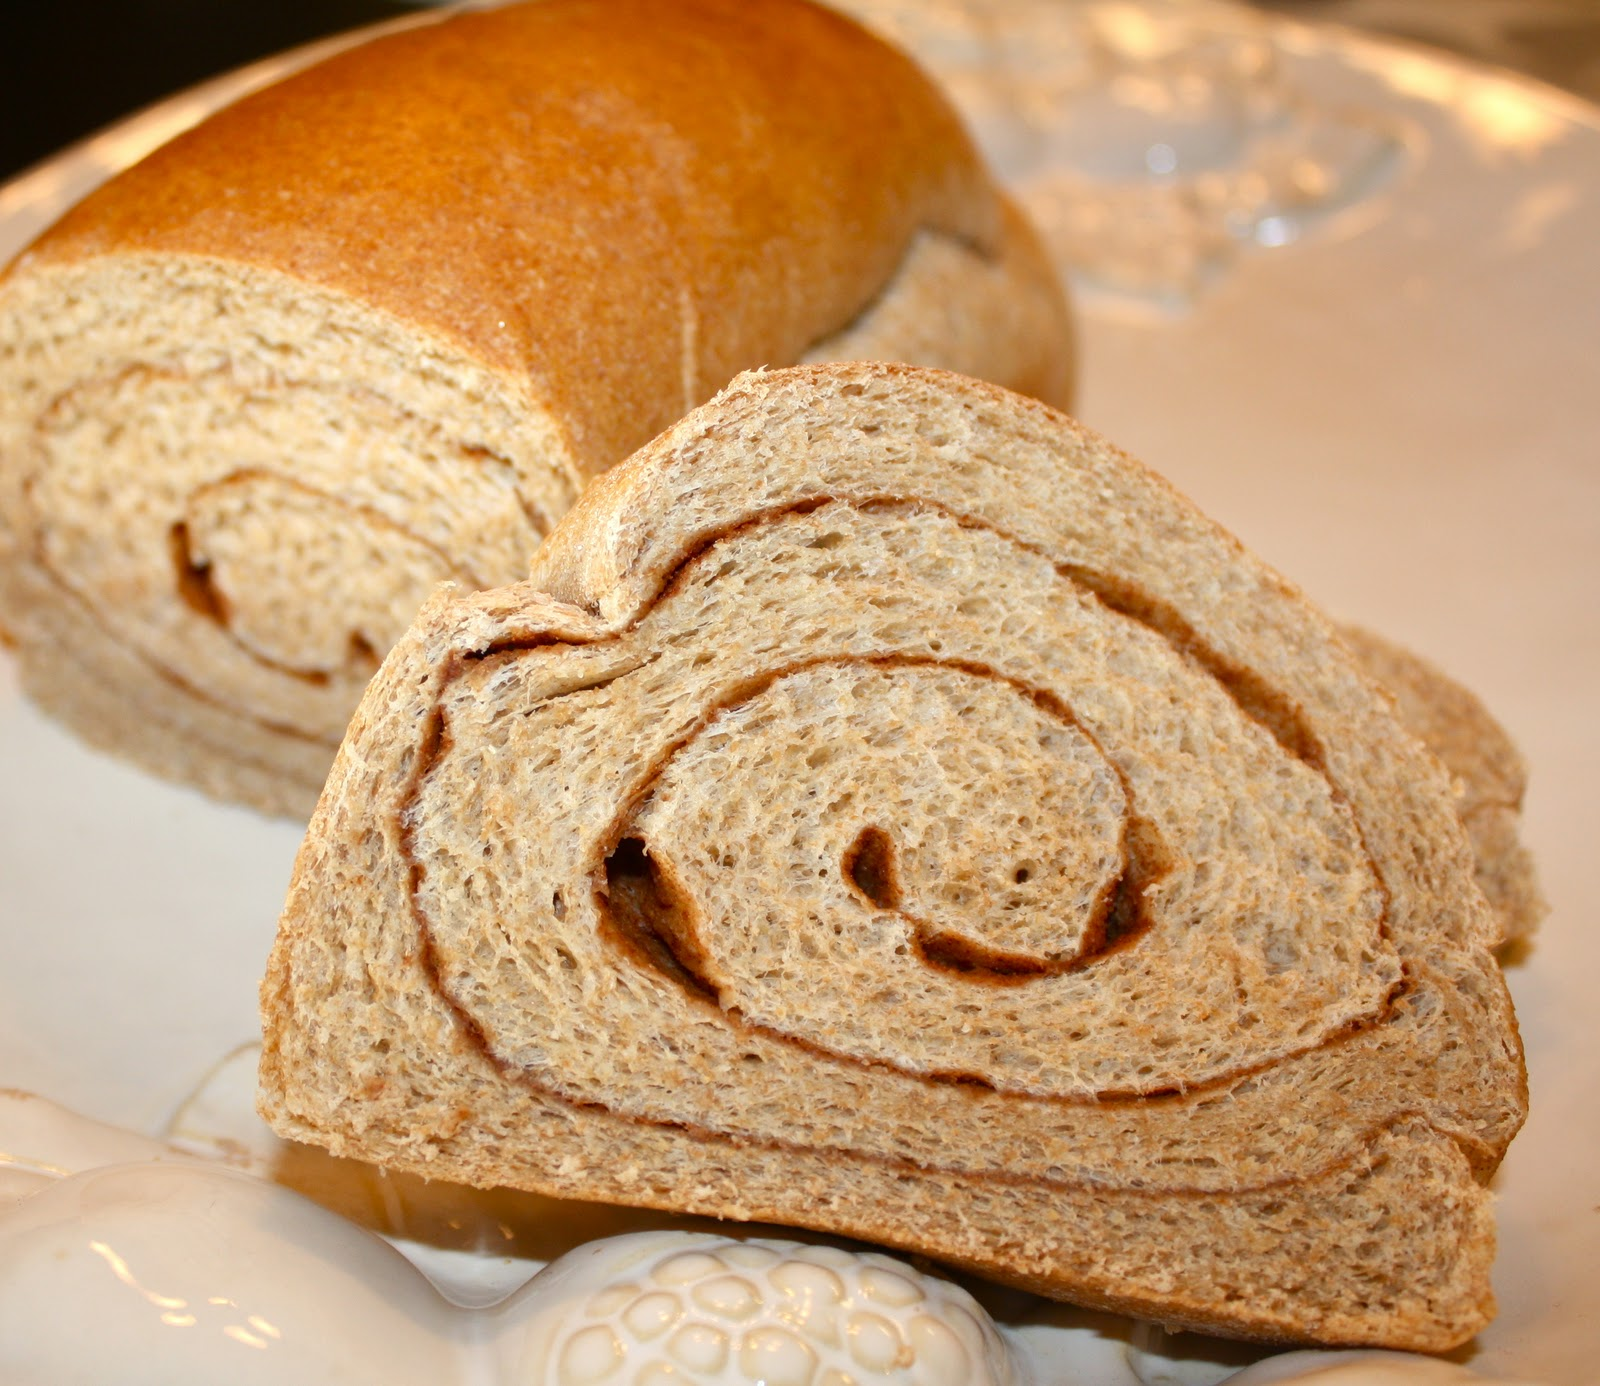 Kuki's Kookbook: Honey Whole Wheat Bread and Whole Wheat ...